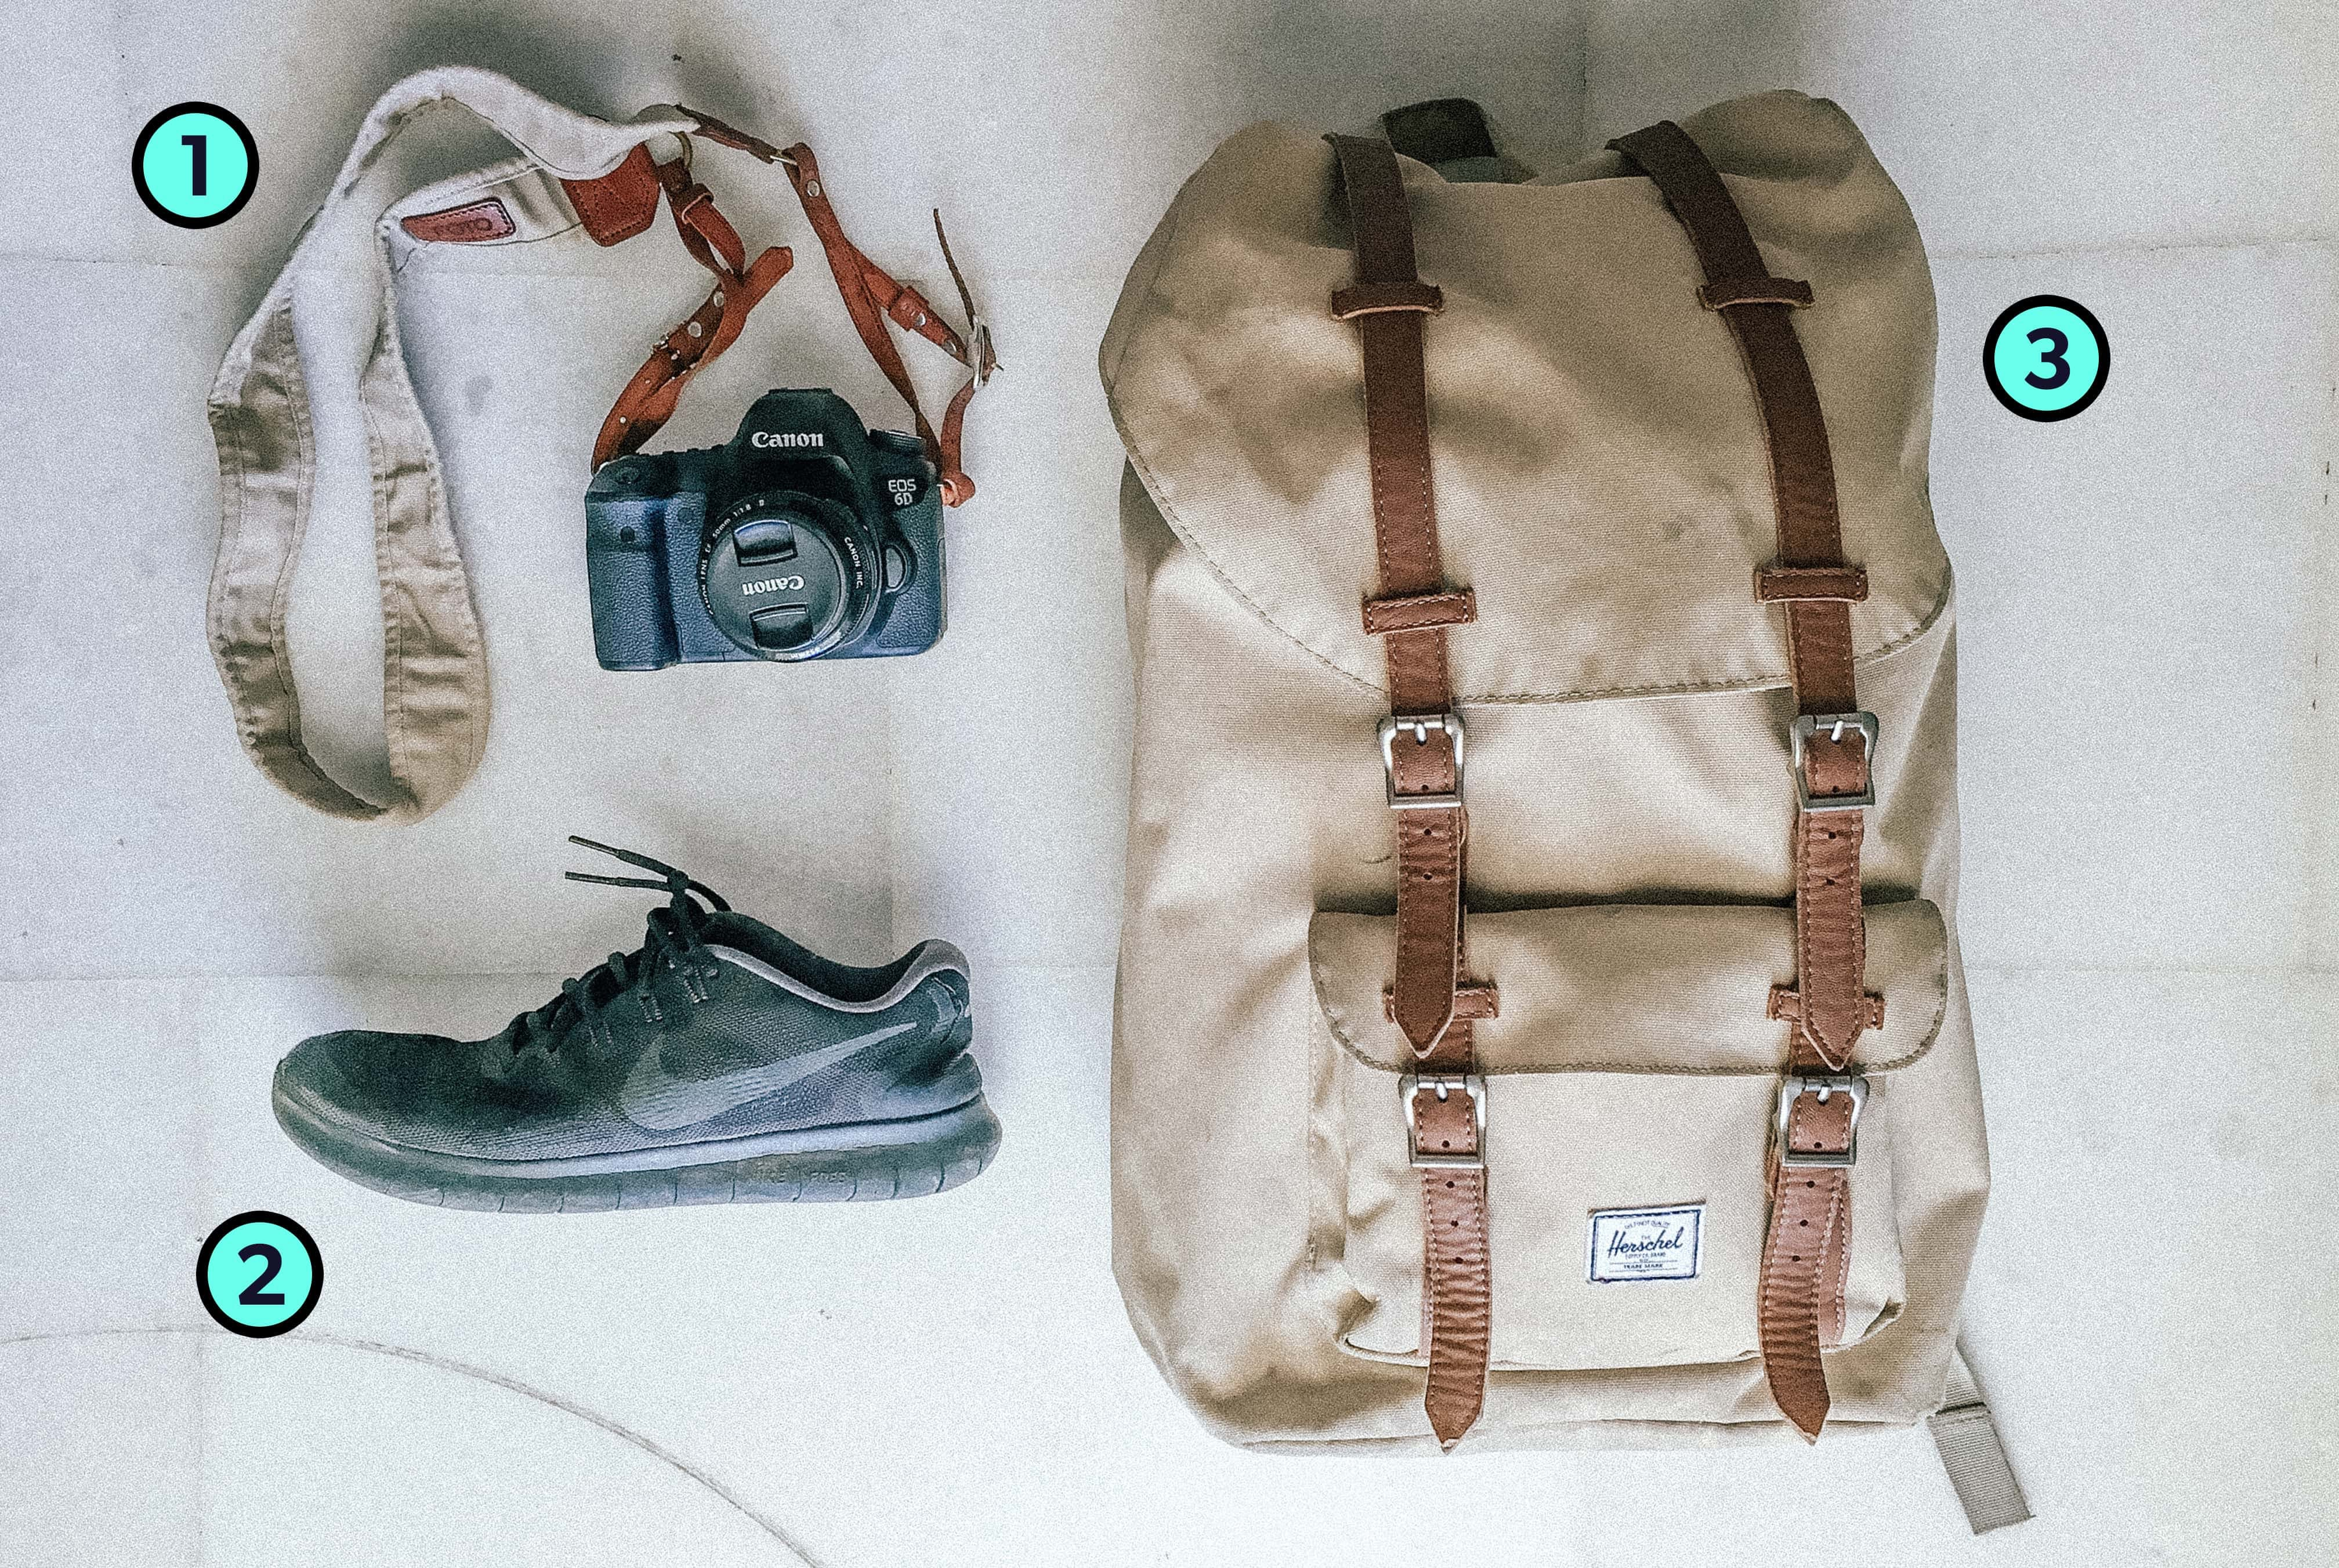 Daniel Sammut's Trusty Three Travel Items